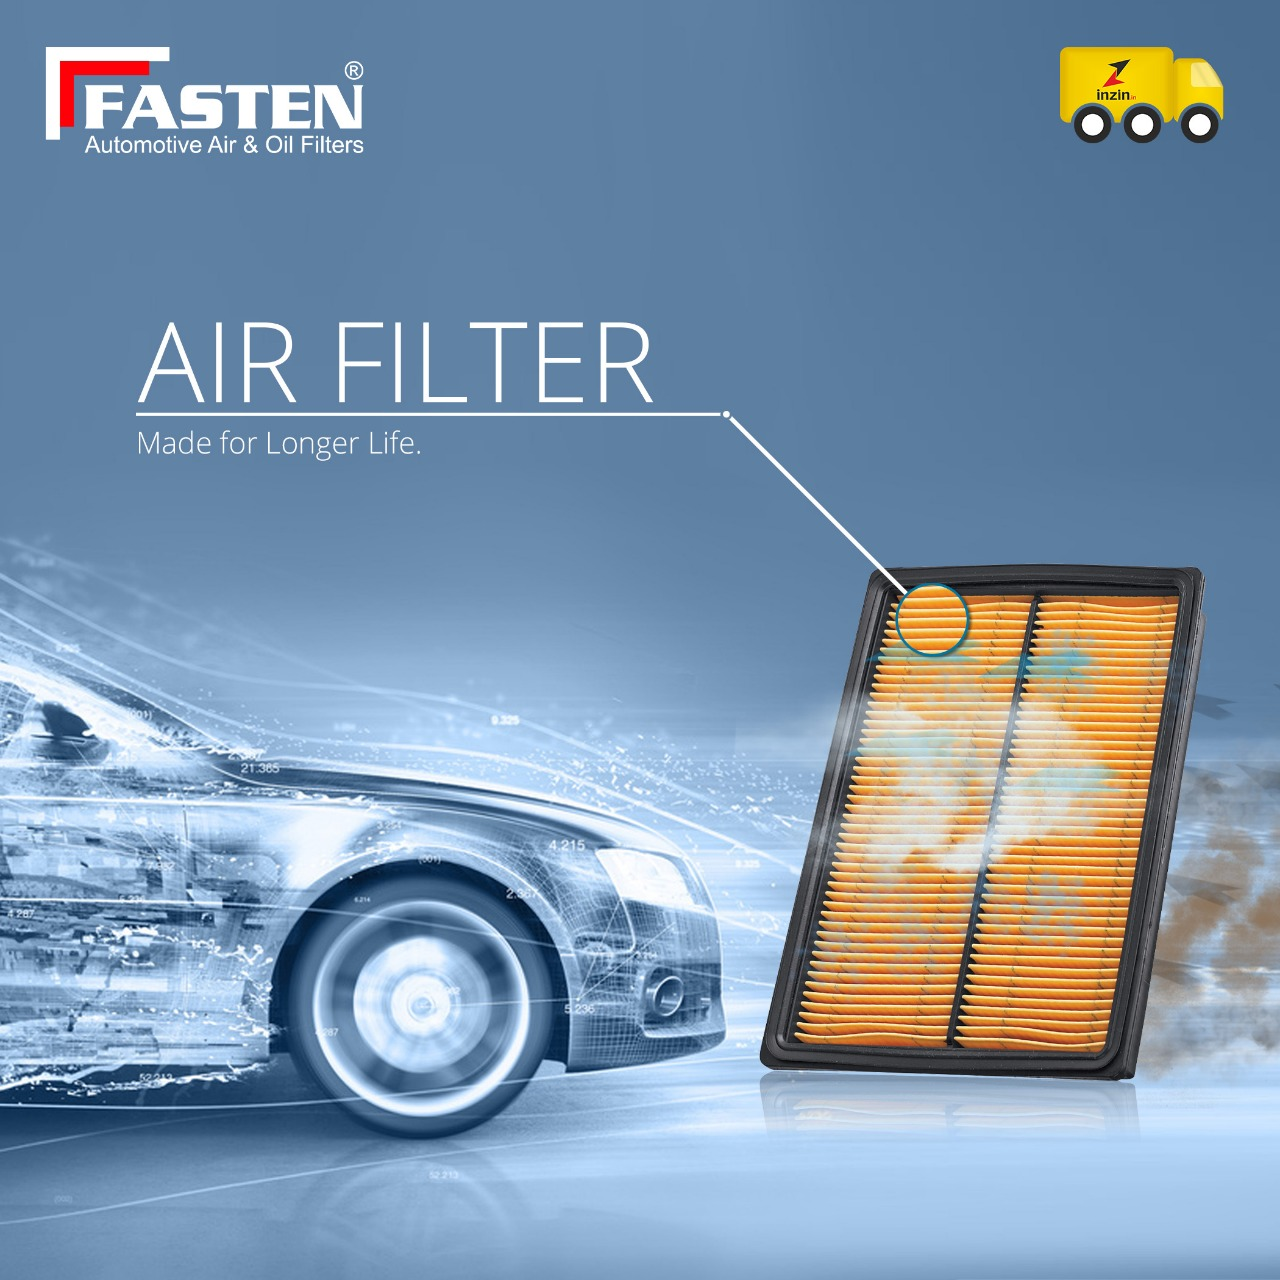 Car air filters manufacturers